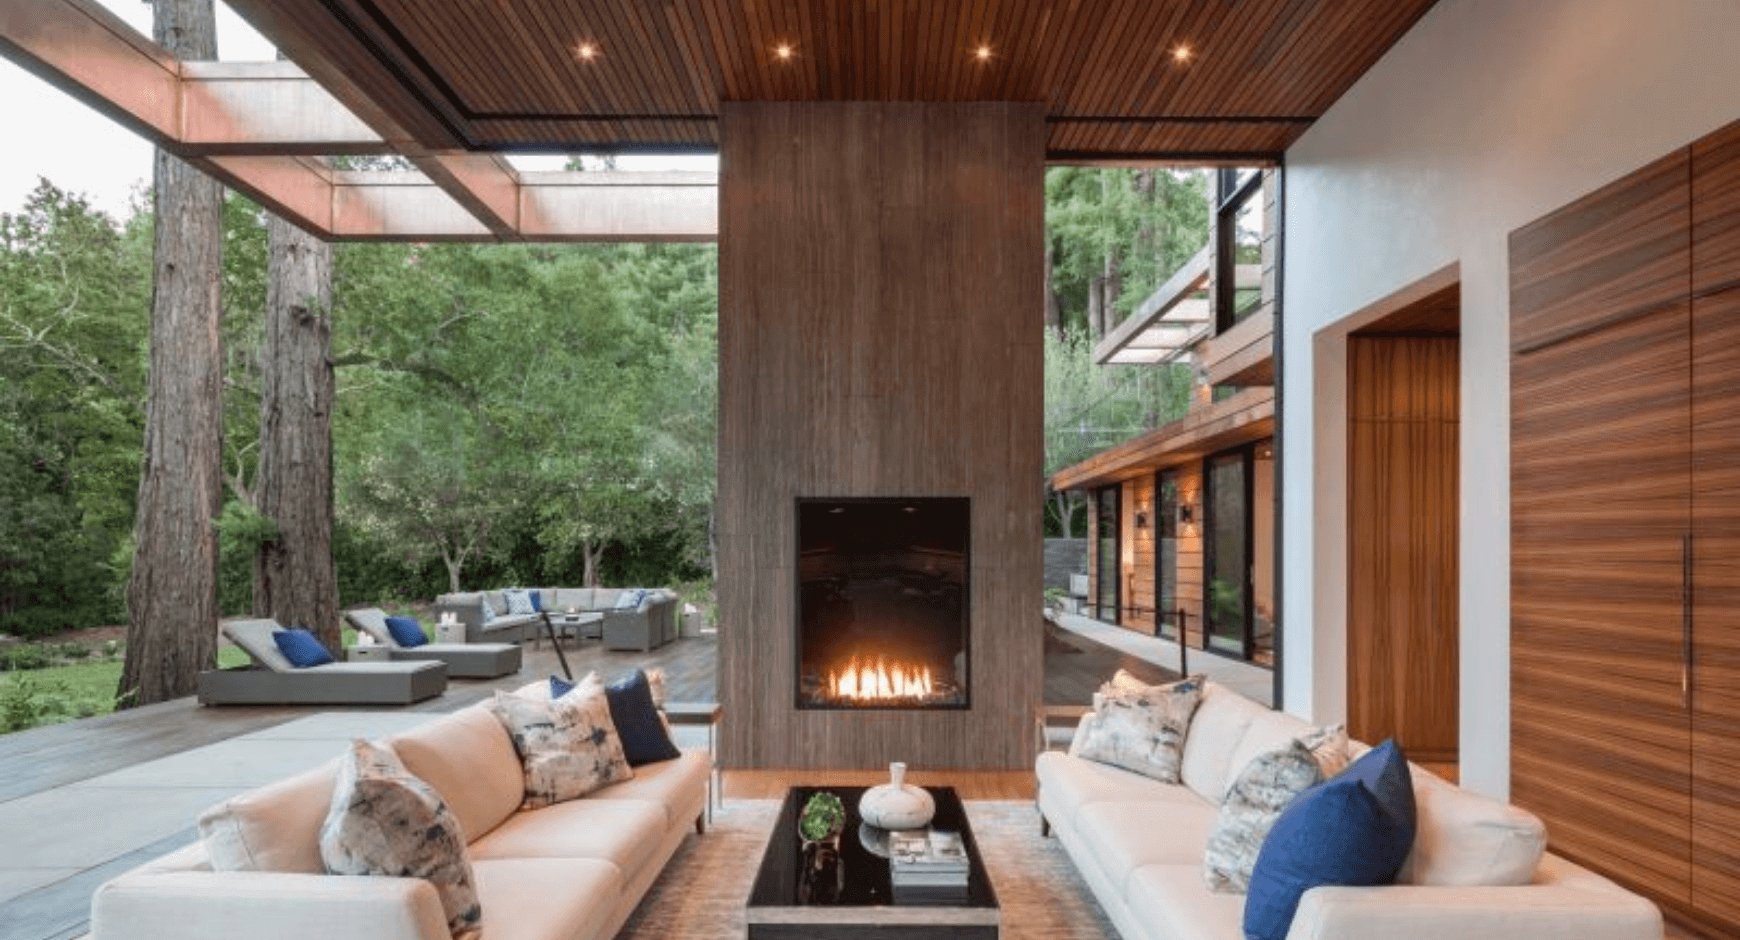 Outdoor Covered Patio with a Fireplace and Striking Contrasting Wood and Stone Features